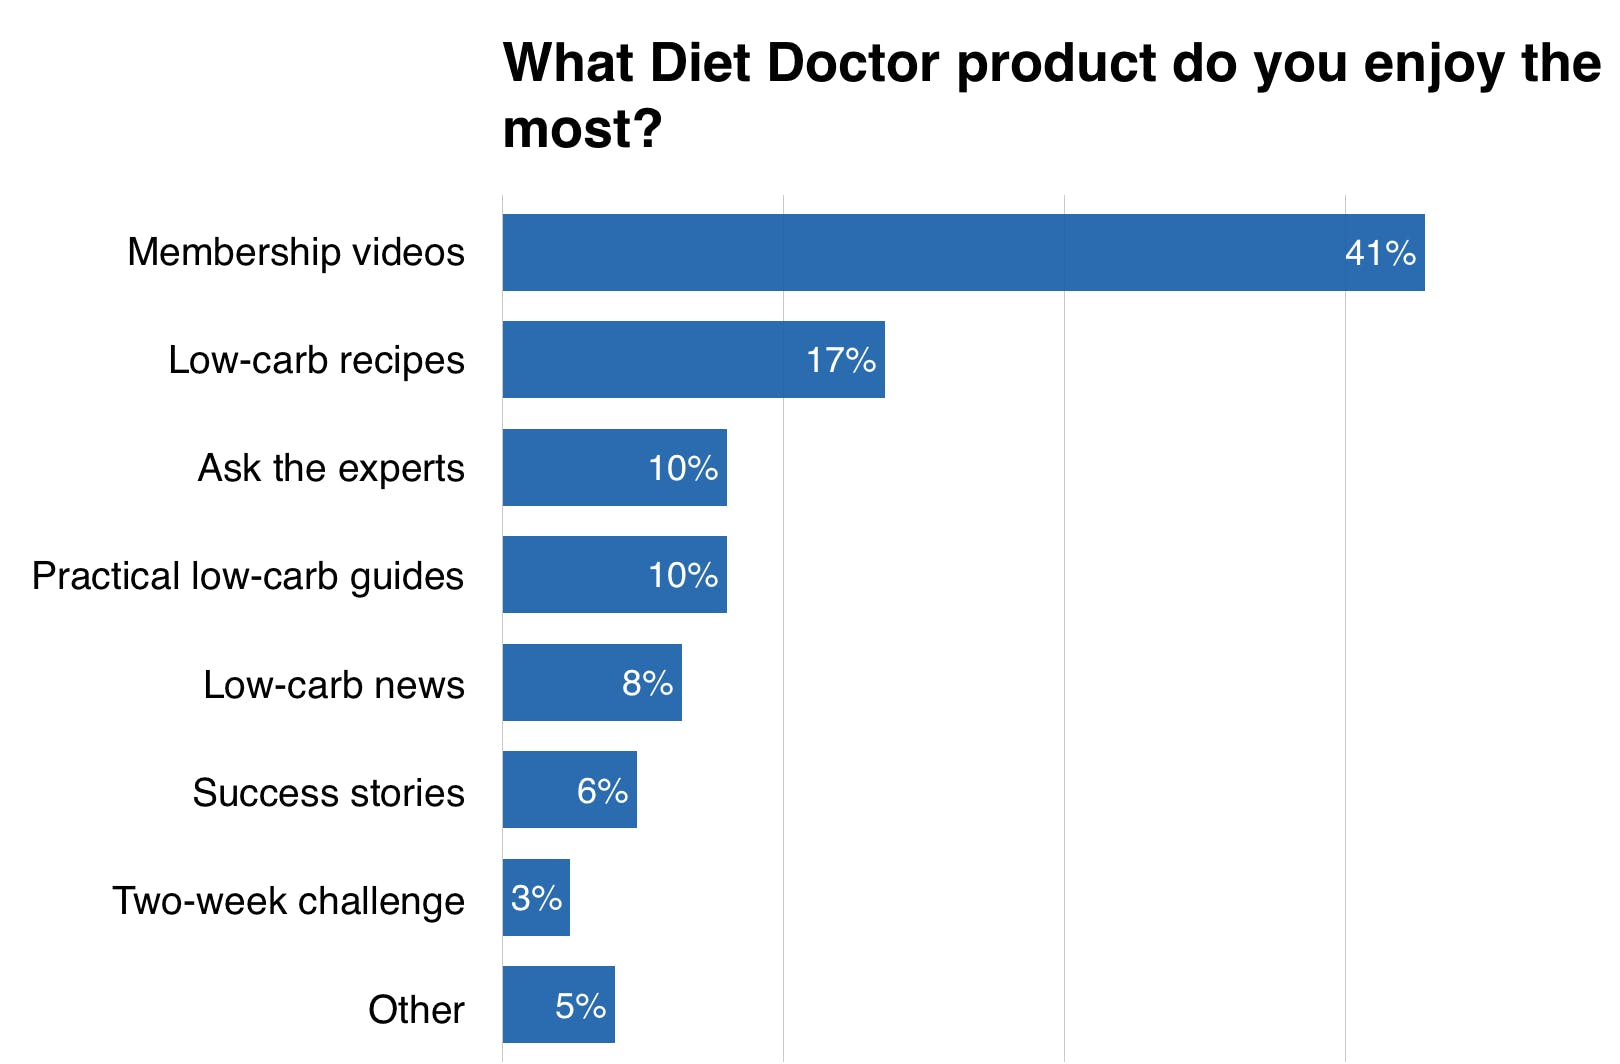 What Diet Doctor Product Do You Enjoy the Most?